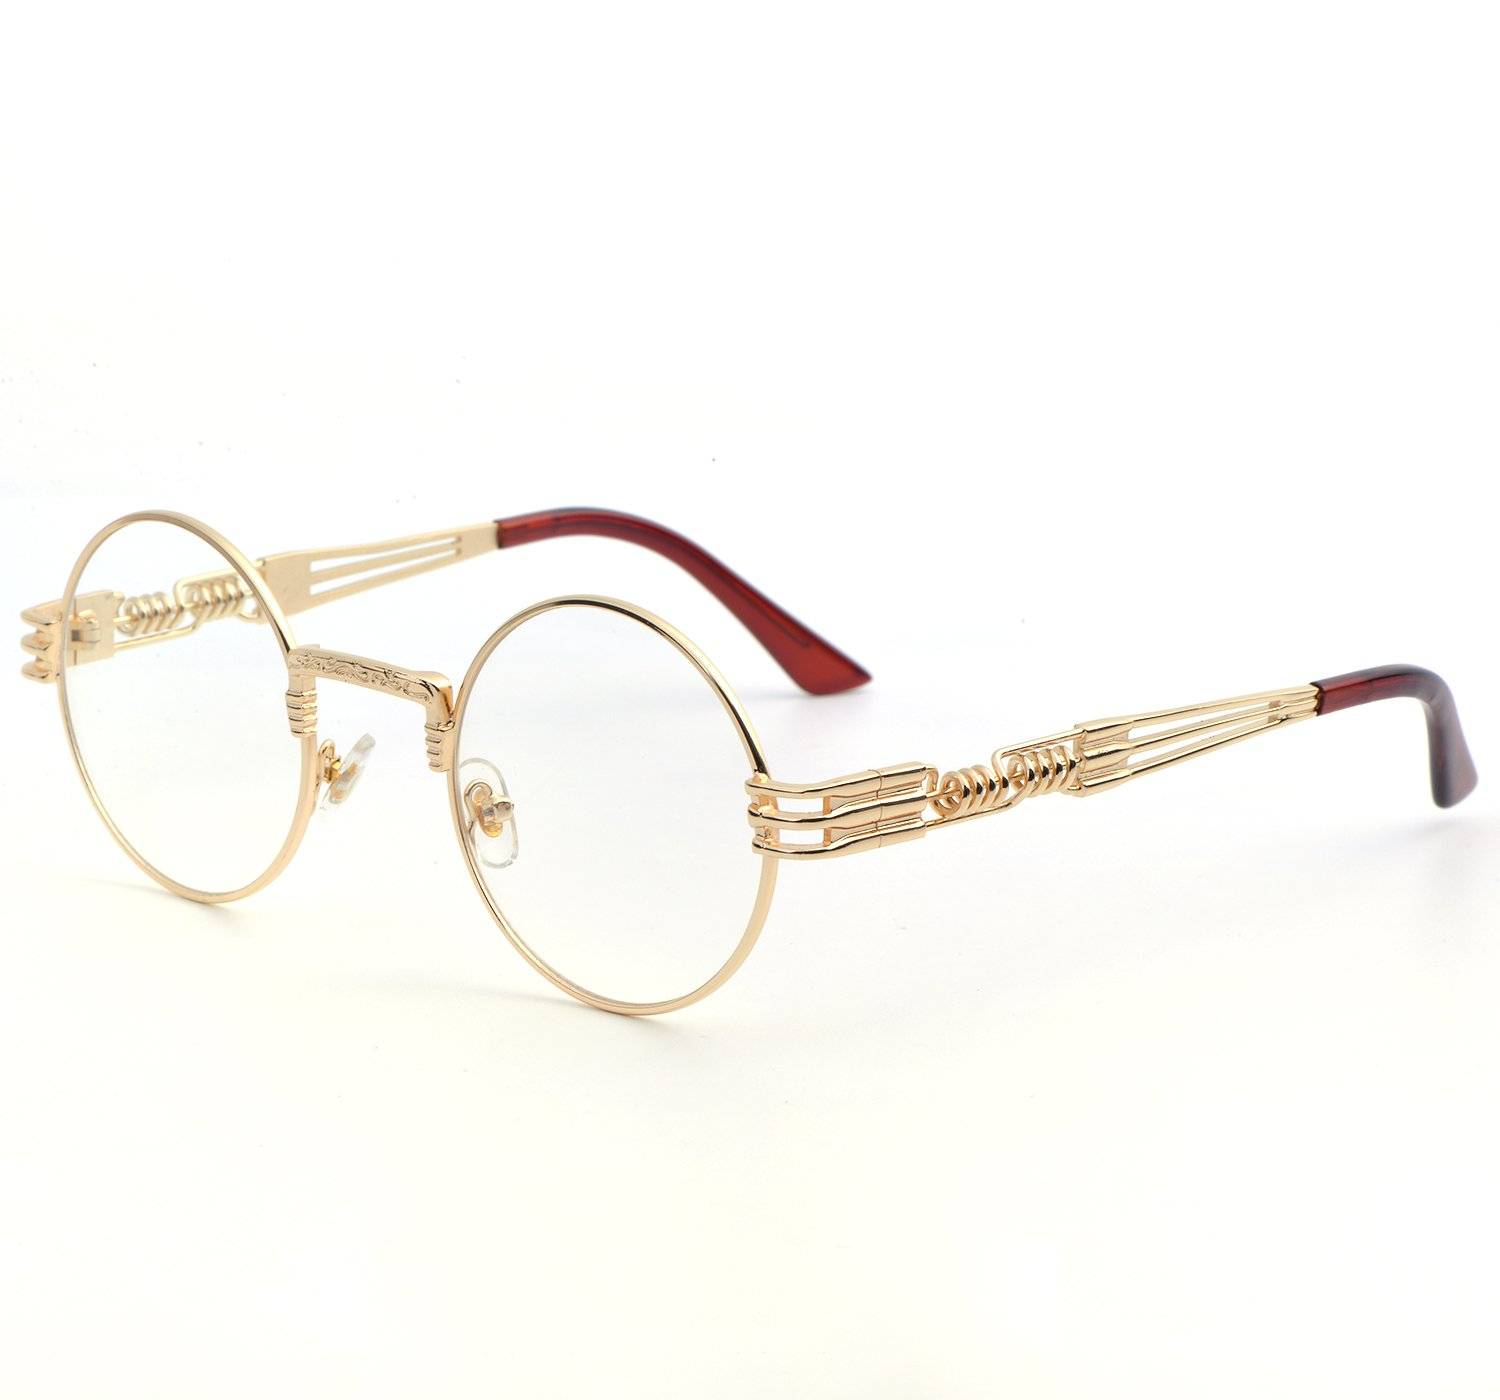 QIYIGE John Lennon Style Metal Spring Frame Round Steampunk Glasses with Clear Lens (Gold Frame/Clear Lens, 51) by QIYIGE